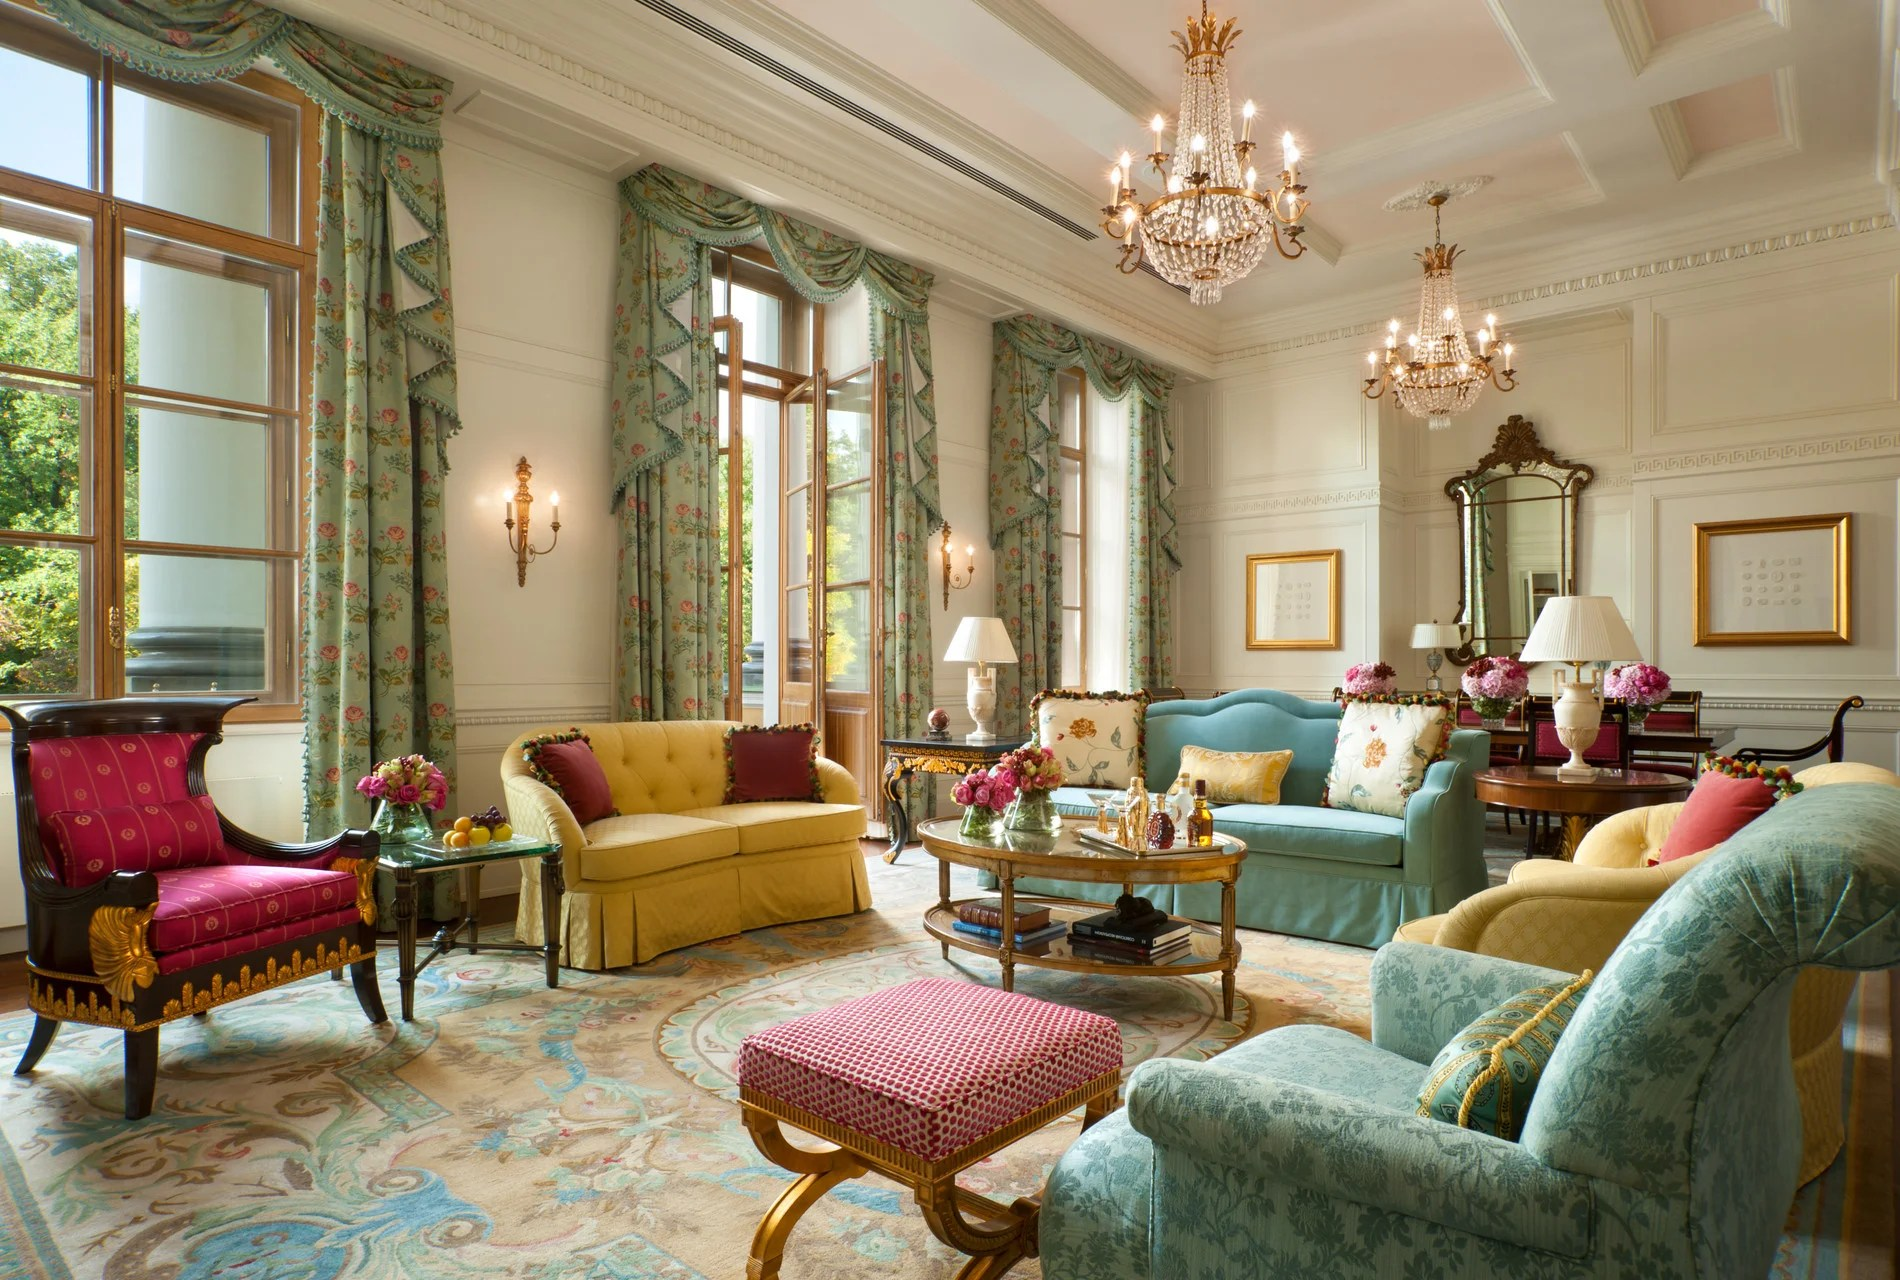 Four Seasons Hotel Lion Palace St Petersburg Russia